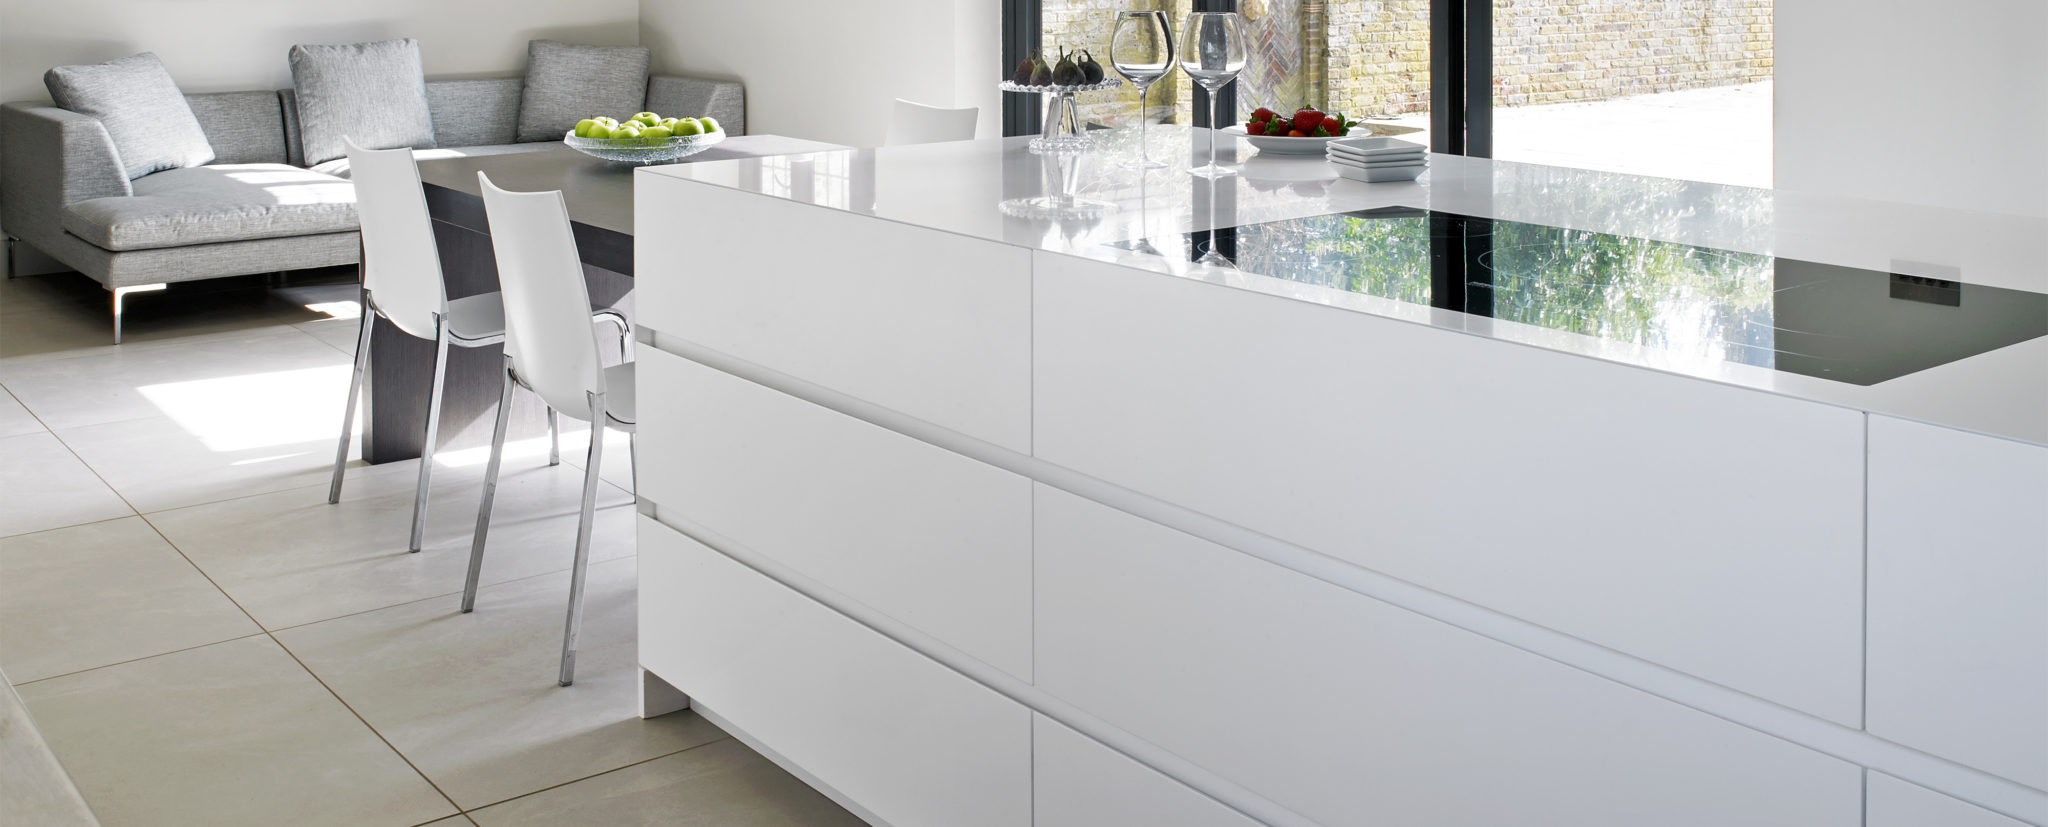 White Contemporary kitchen island with integrated induction hob and dining table - Wimbledon